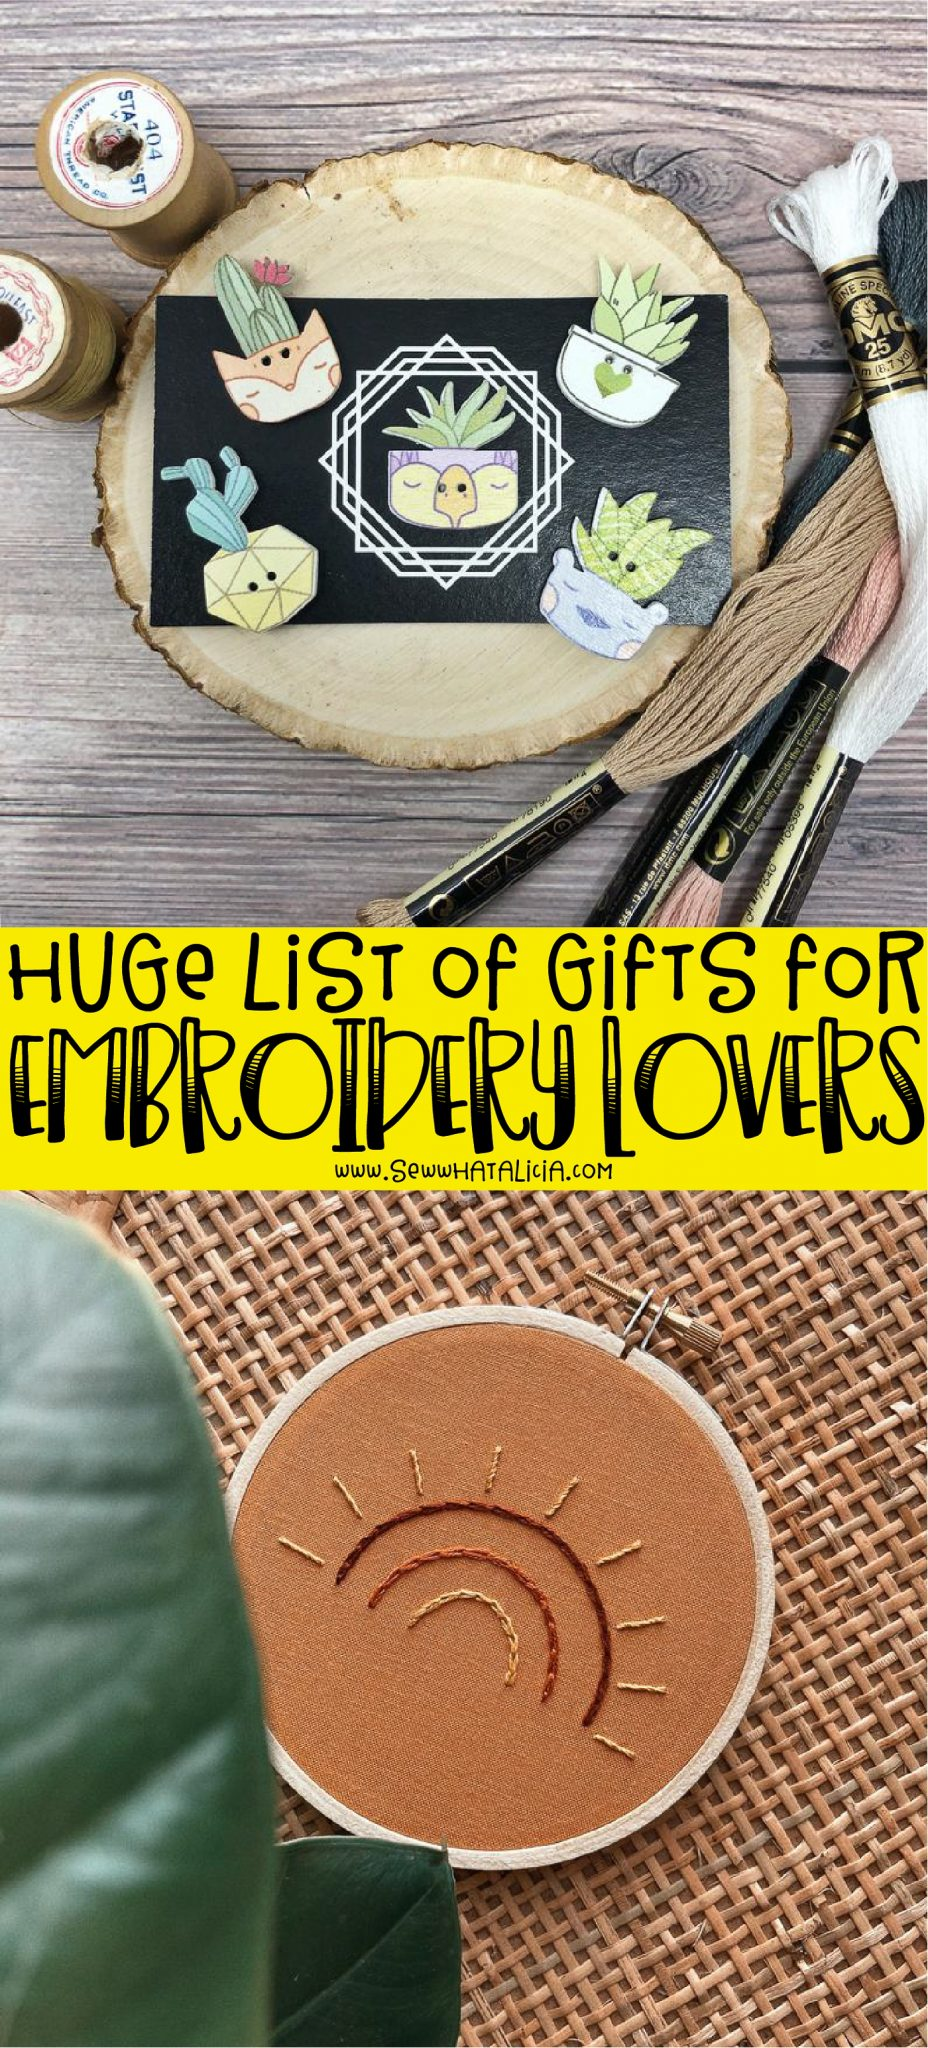 text overlay reading huge list of gifts for embroidery lovers, embroidery gifts rainbow hoop, cactus needle minders on wood slice